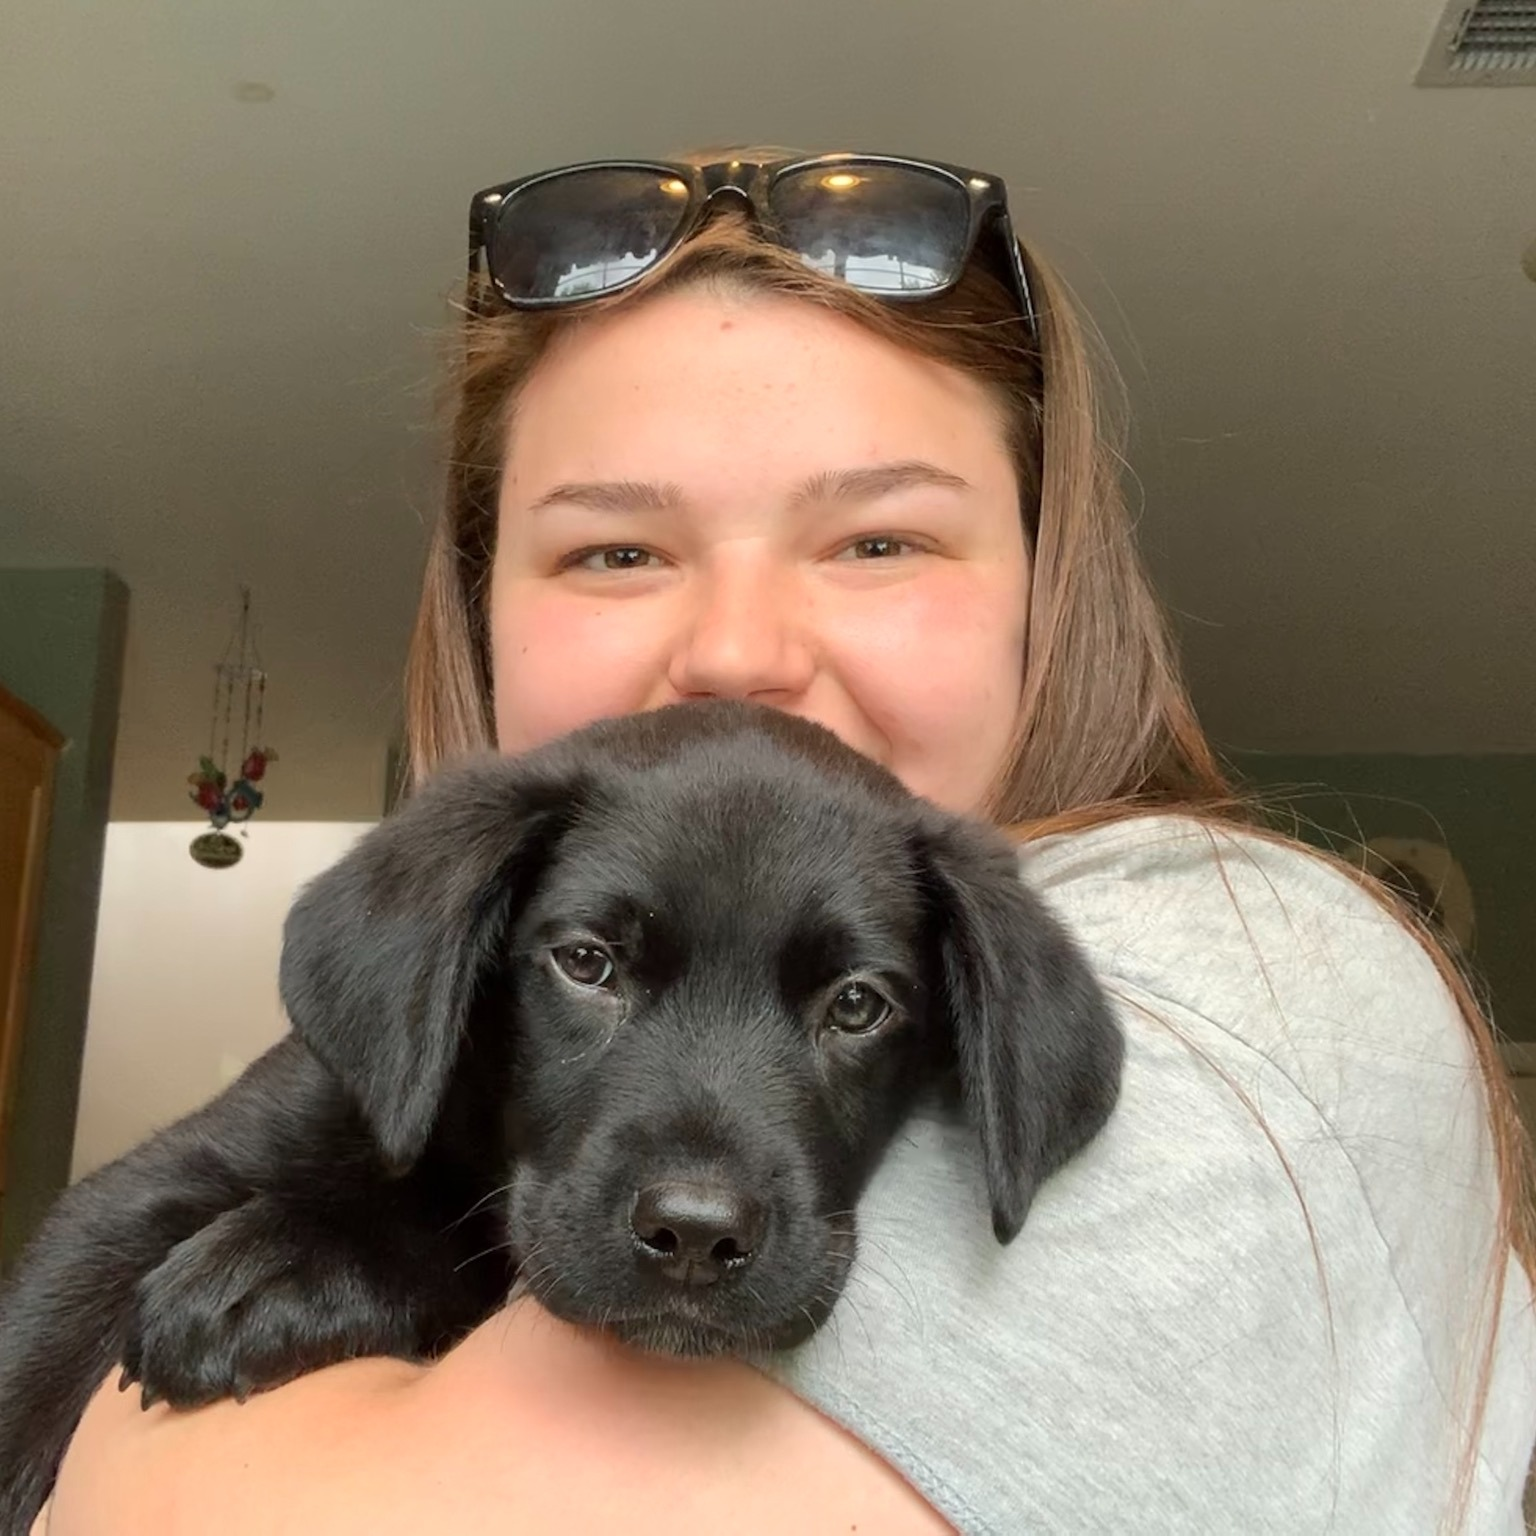 Christine holds a black lab puppy.